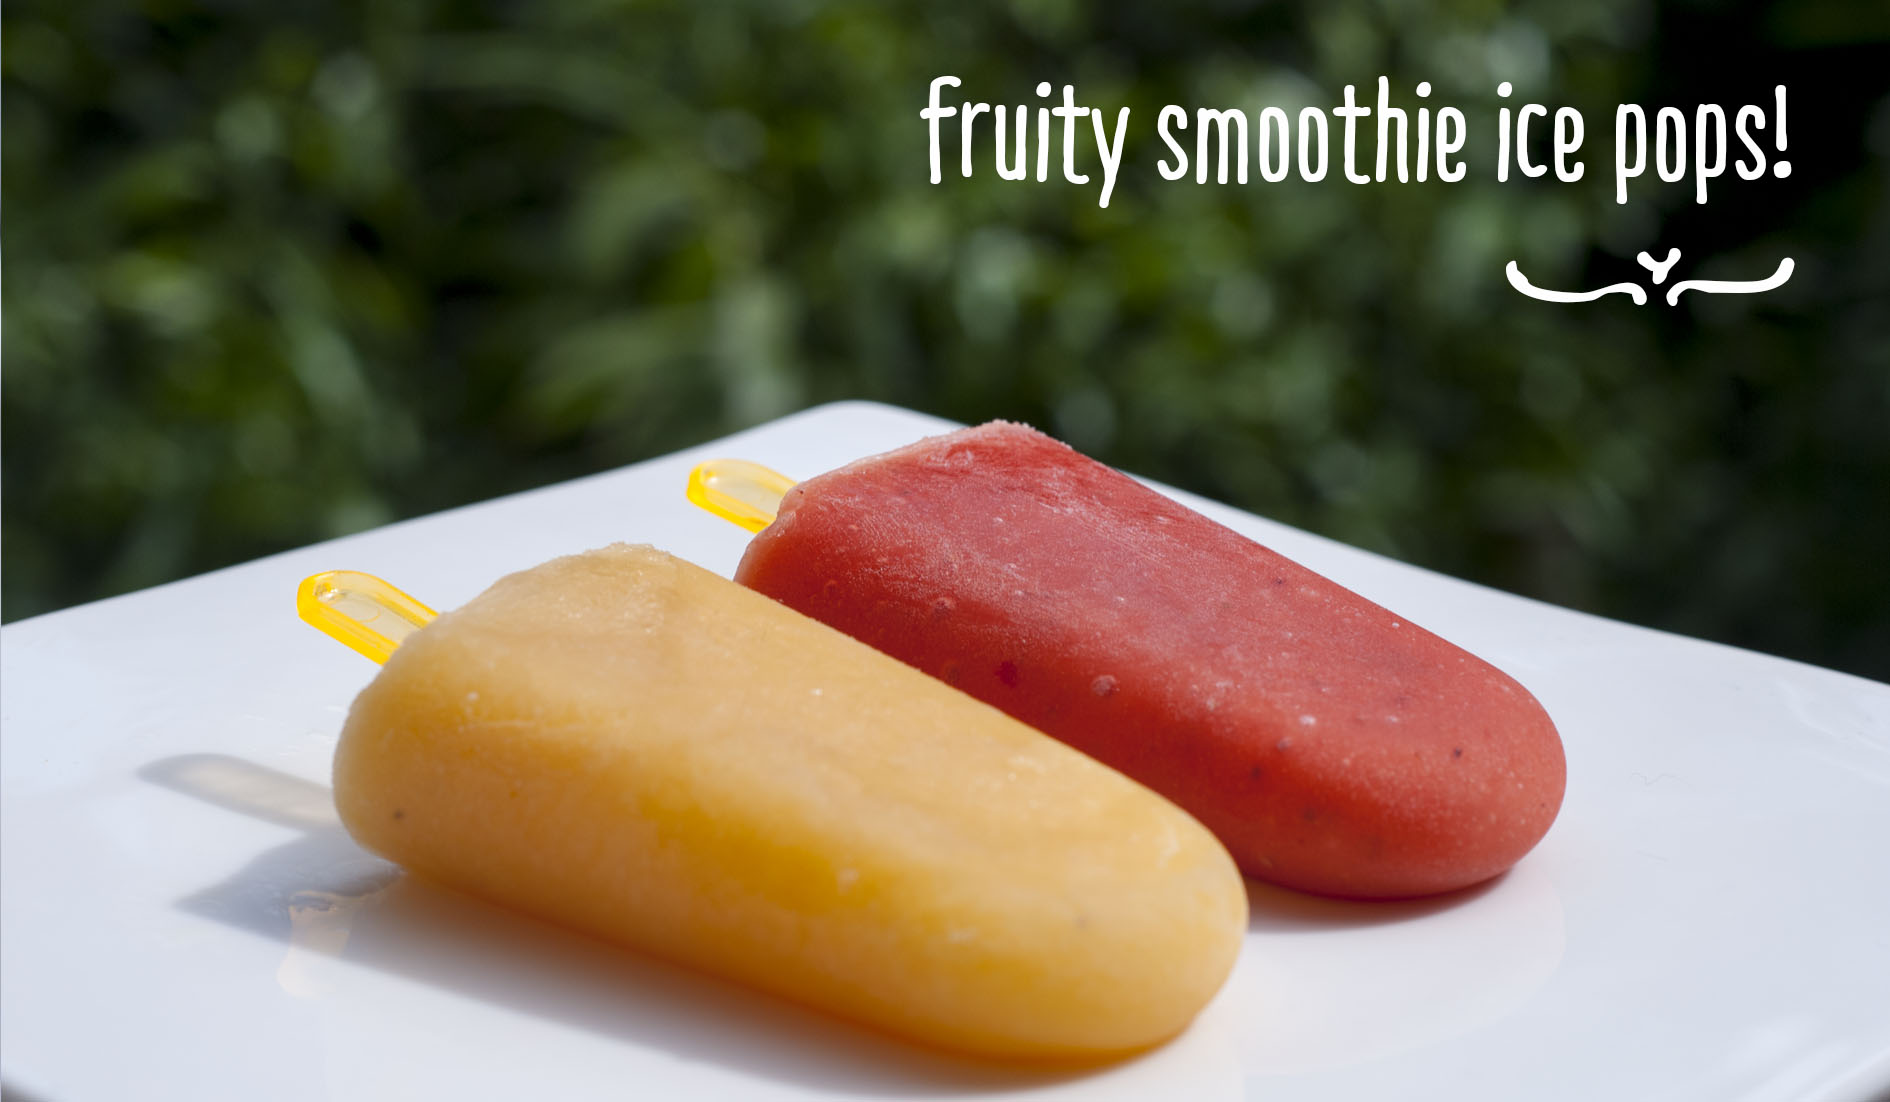 Homemade fruity smoothie ice pops